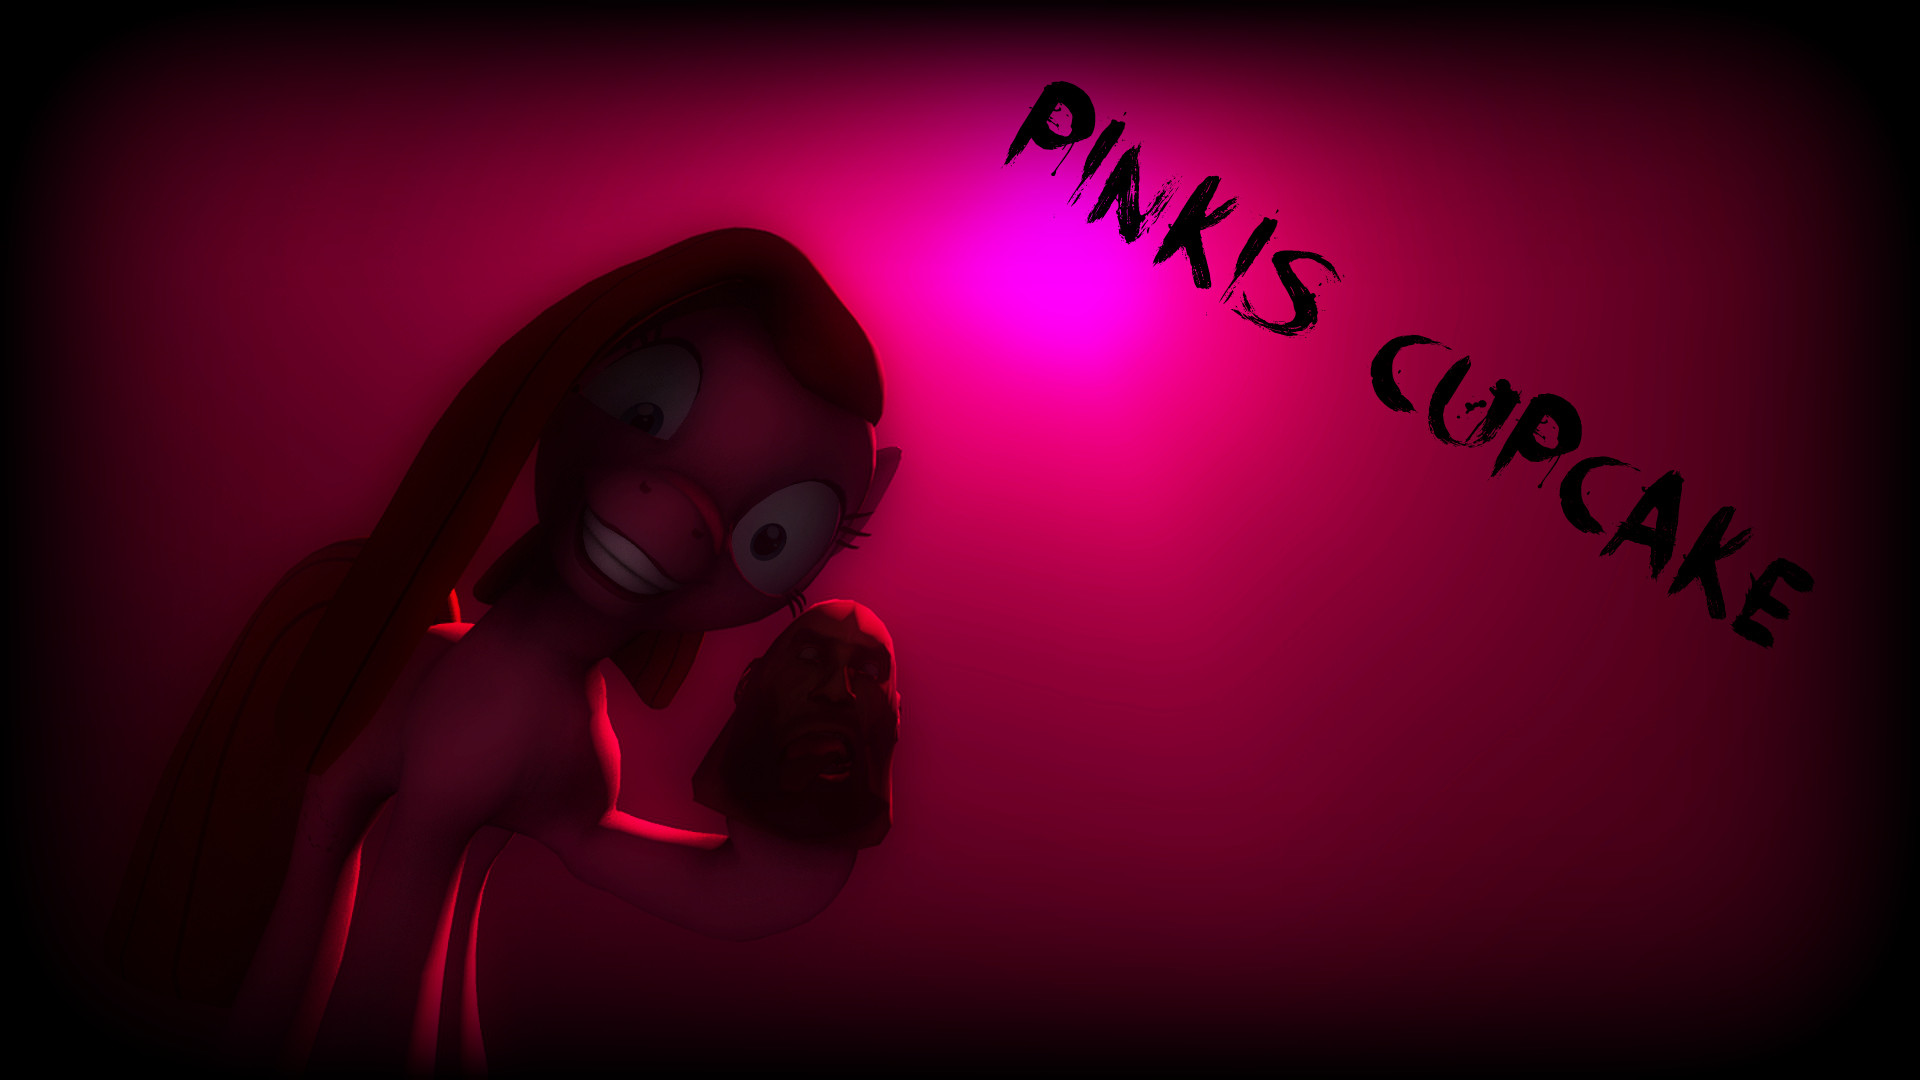 Res: 1920x1080, TIShadster 83 12 EOI WallPaper - Pinkis Cupcake by WyldFyr56